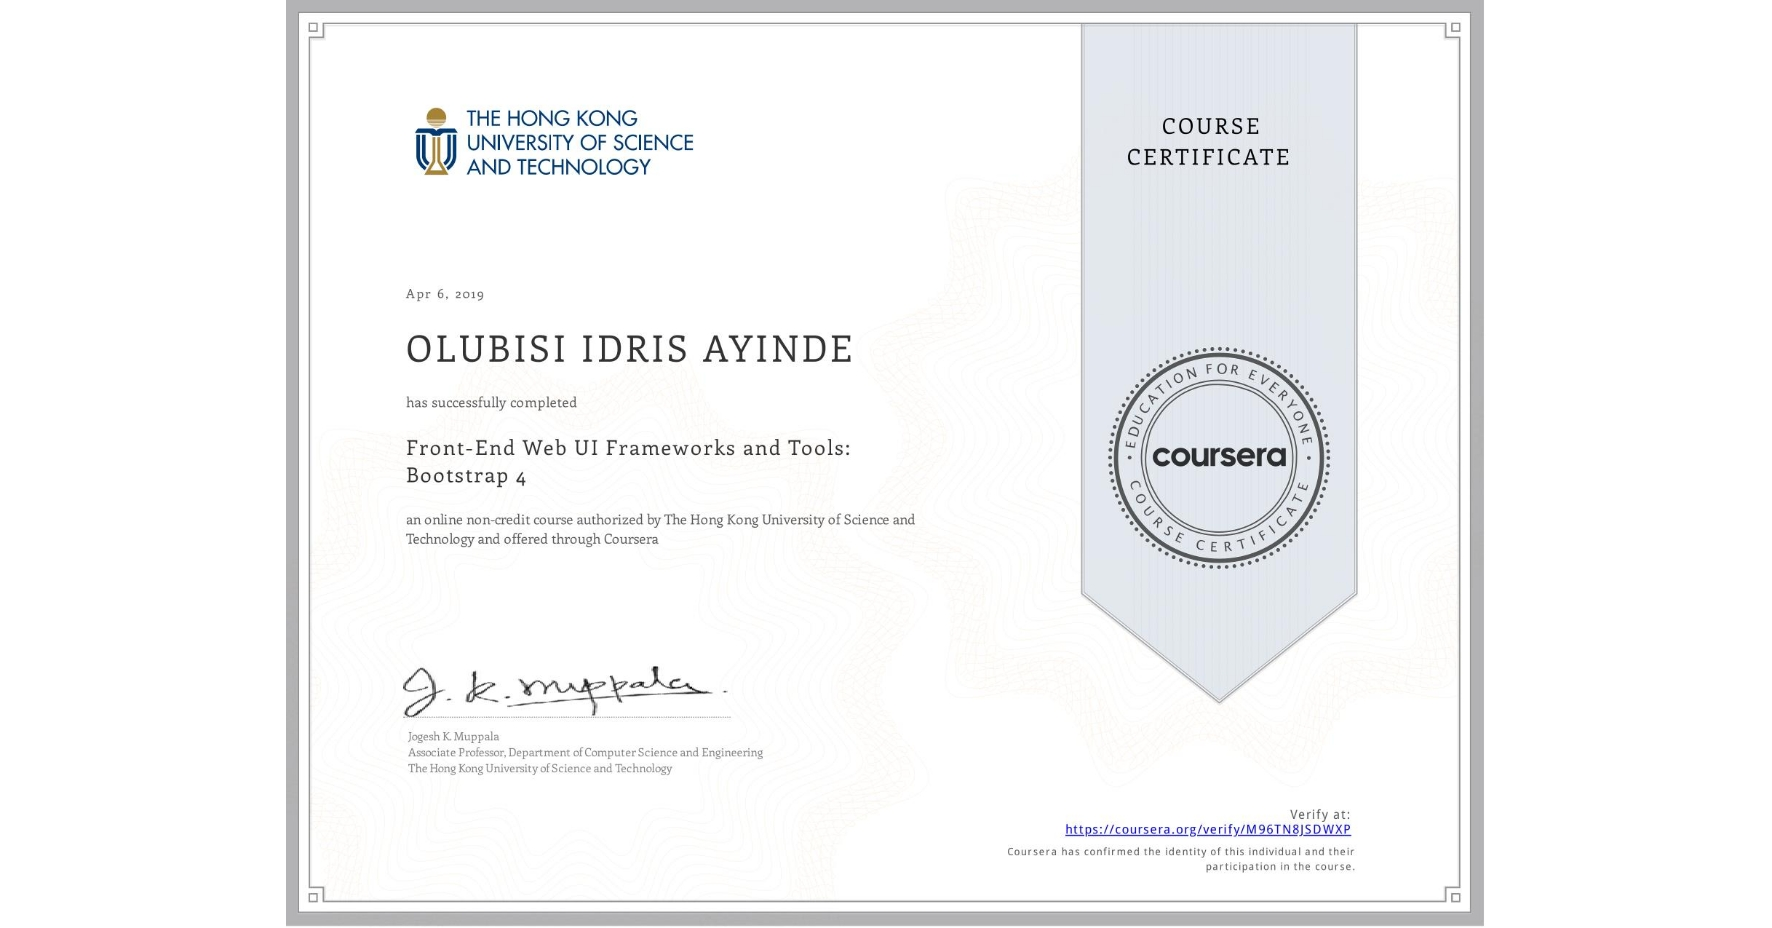 View certificate for OLUBISI IDRIS AYINDE, Front-End Web UI Frameworks and Tools: Bootstrap 4, an online non-credit course authorized by The Hong Kong University of Science and Technology and offered through Coursera